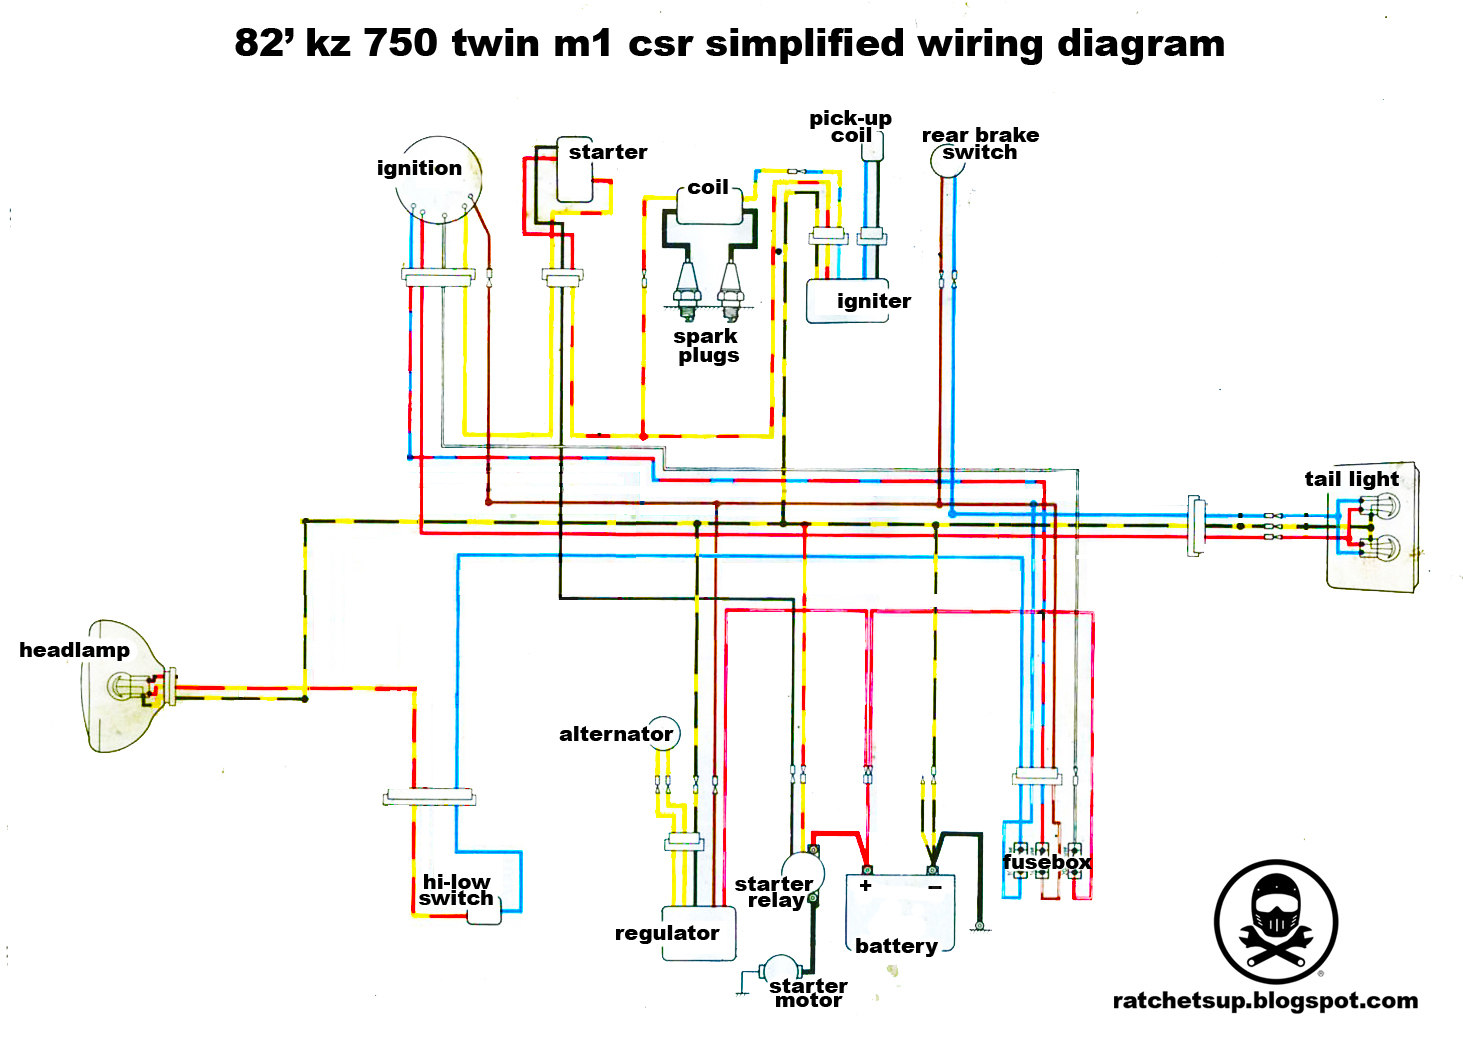 kz750 simple diagram kz750 wiring diagram 1978 kawasaki k z 750 wiring [ 1463 x 1052 Pixel ]